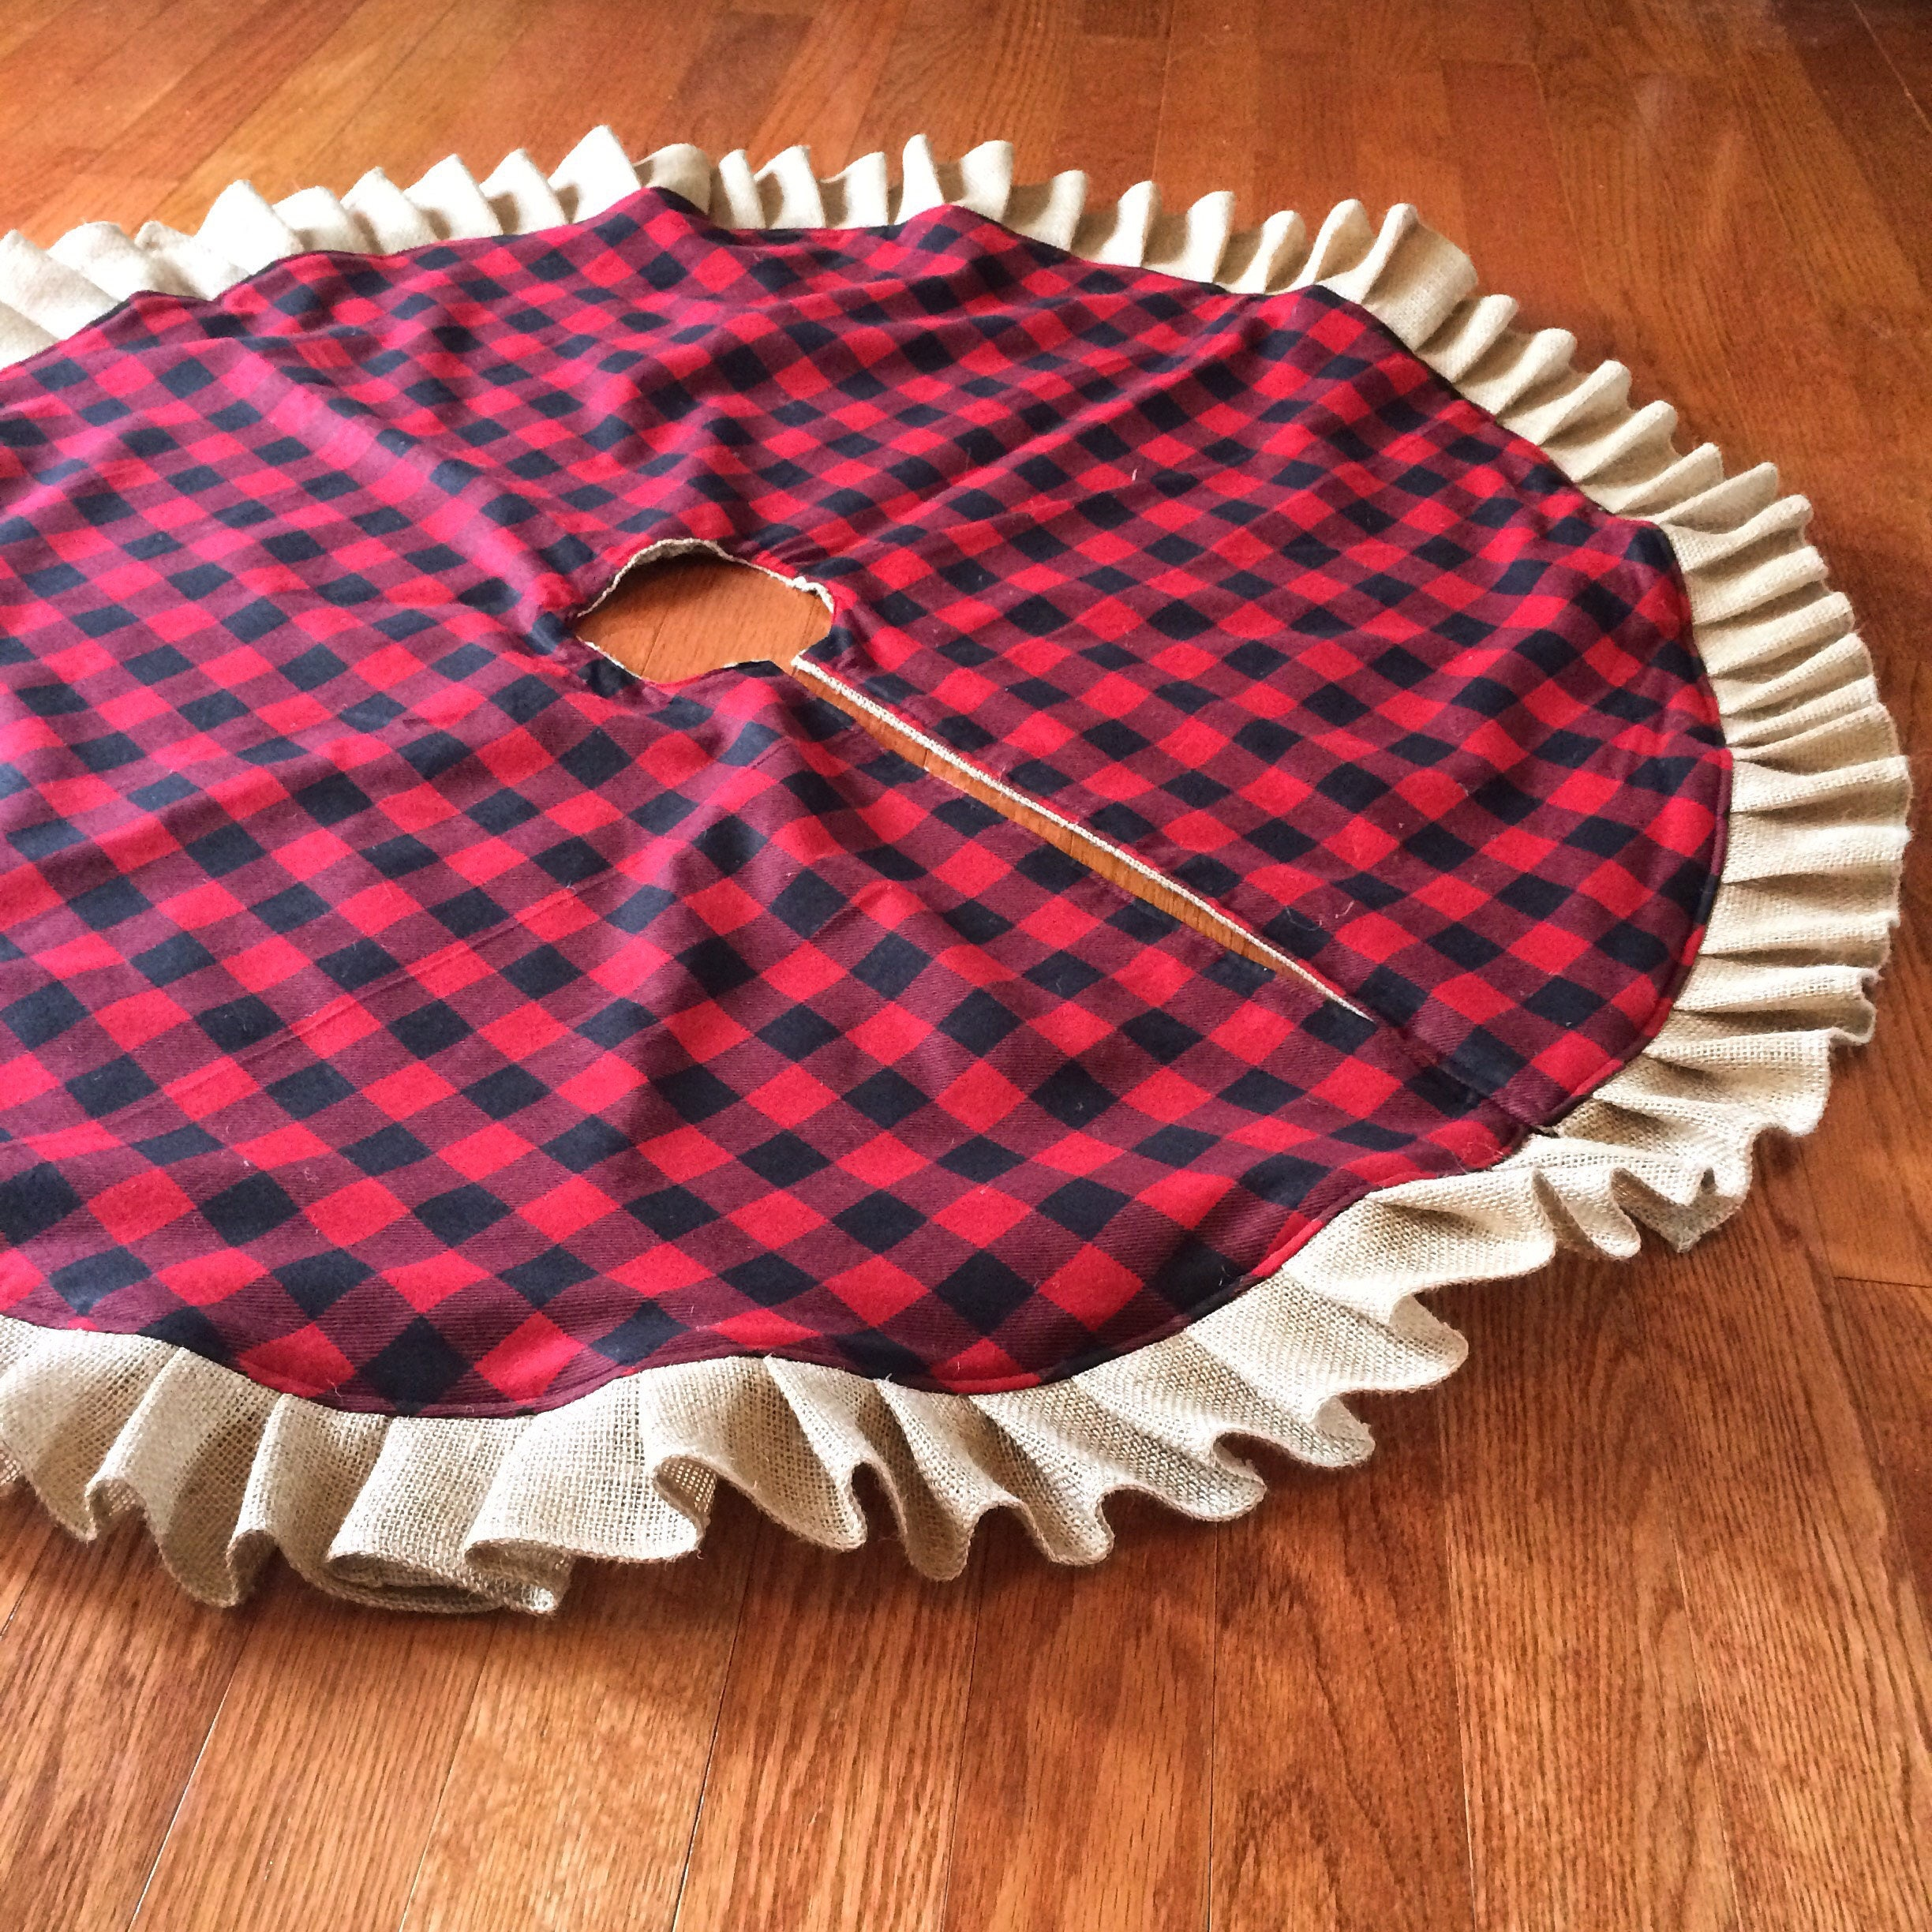 buffalo plaid burlap ruffle christmas tree skirt 45 46 red and black buffalo check flannel cotton natural burlap farmhouse cabin decor